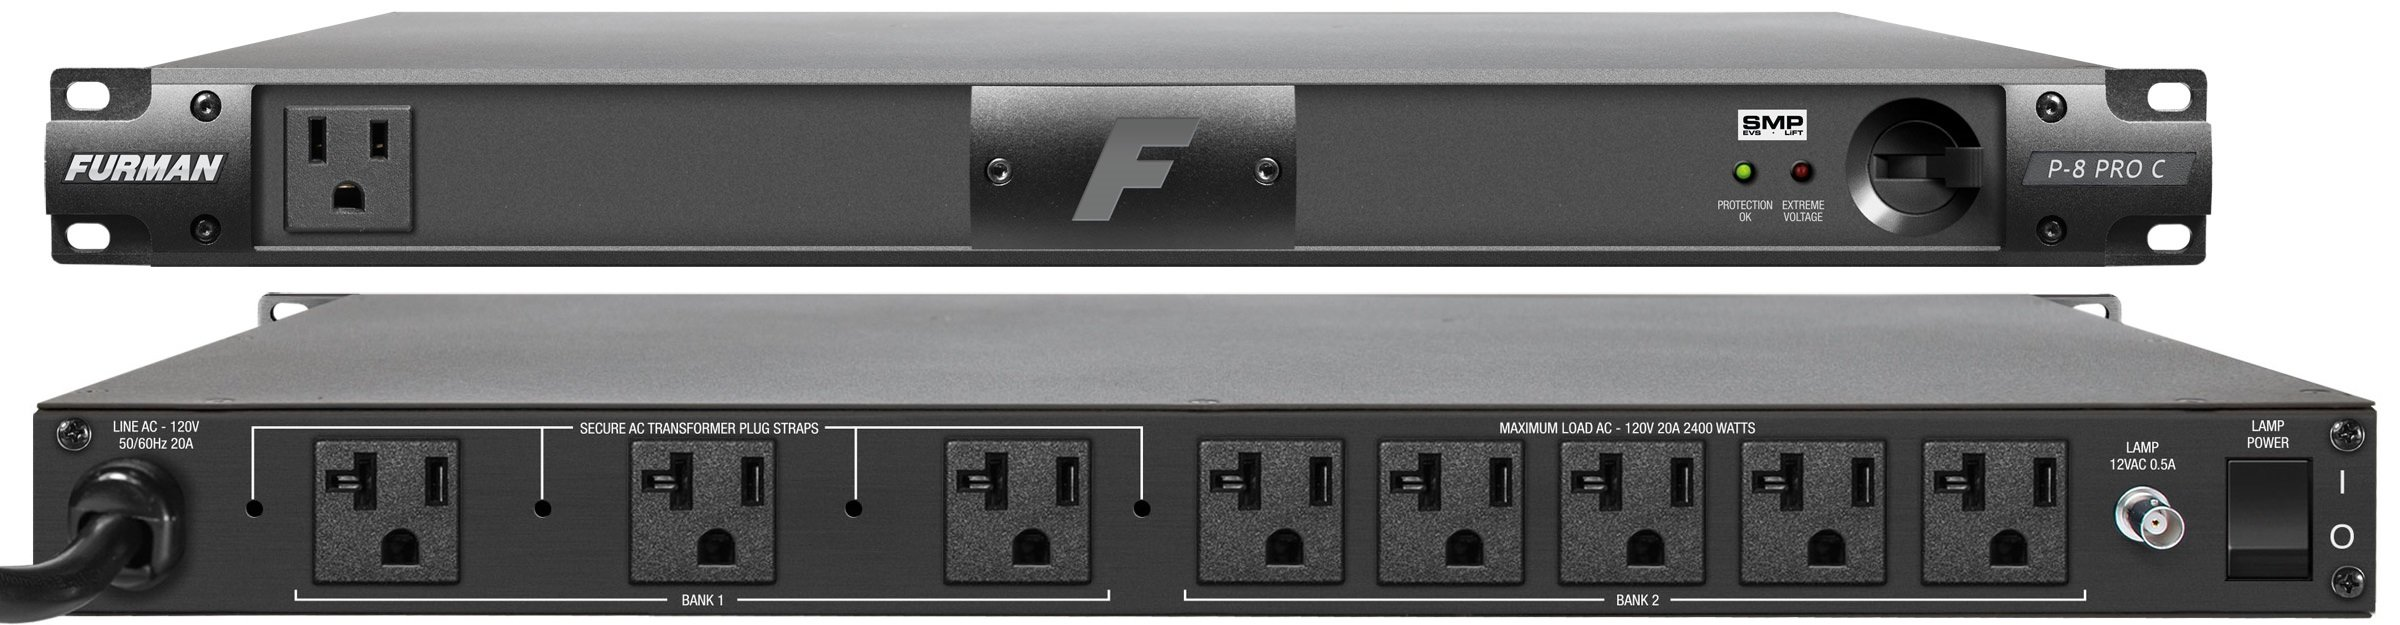 furman-p8-pro-c-20amp-power-conditioner.jpg